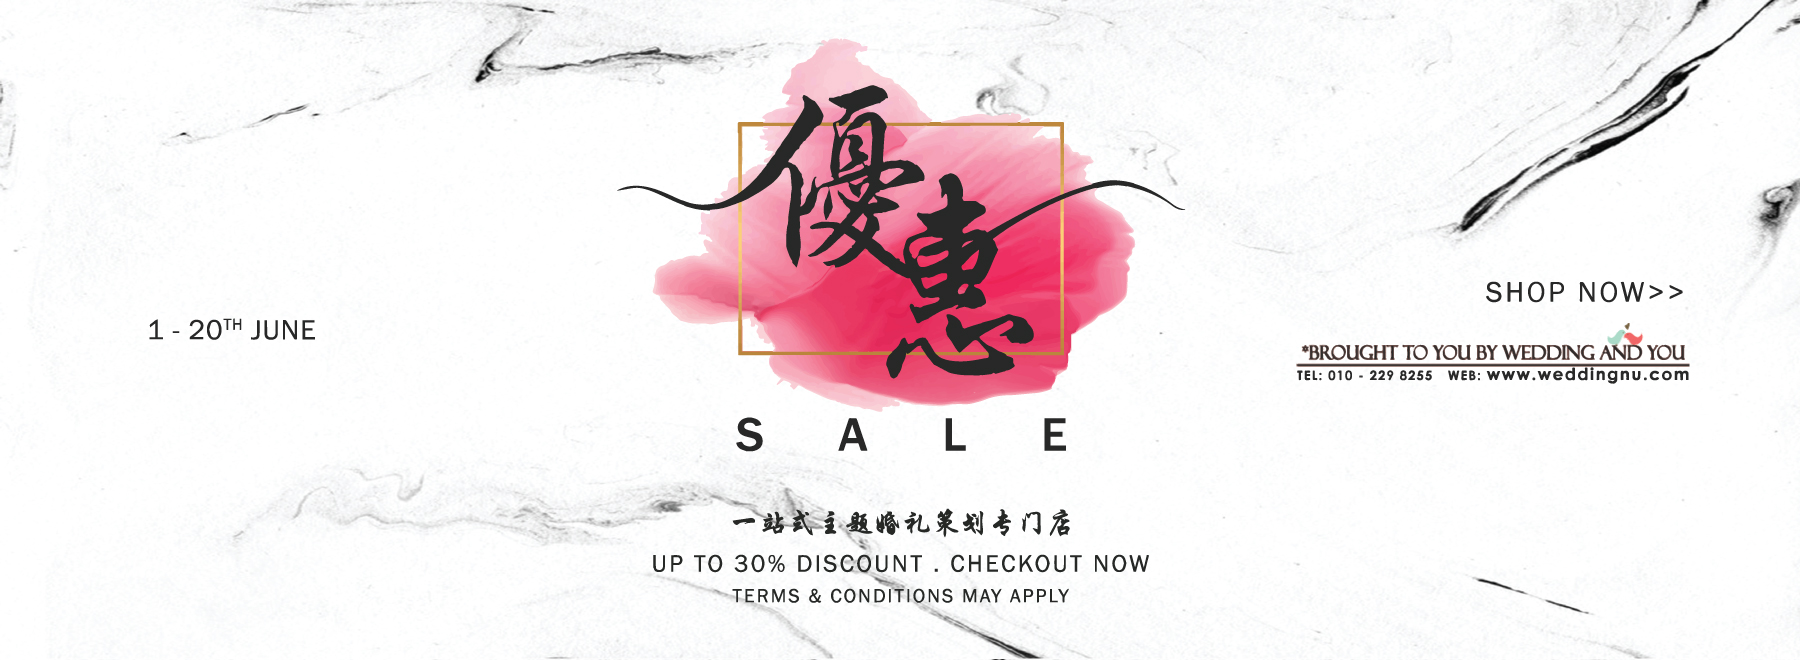 JUN-SALE-PROMO-FB